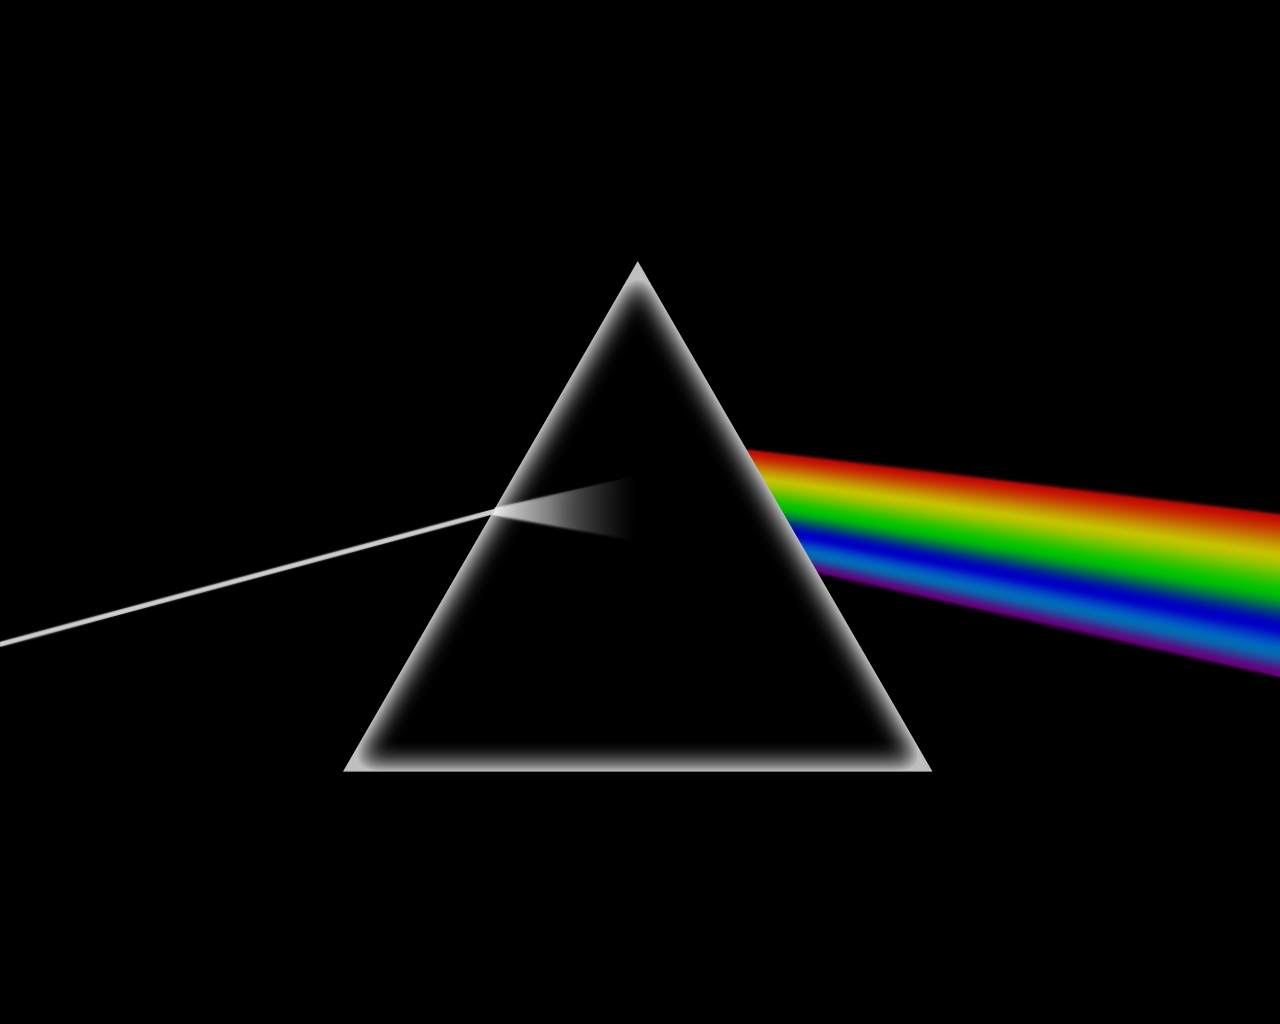 Wallpapers Pink Floyd   Wallpapers gratuits 1280x1024